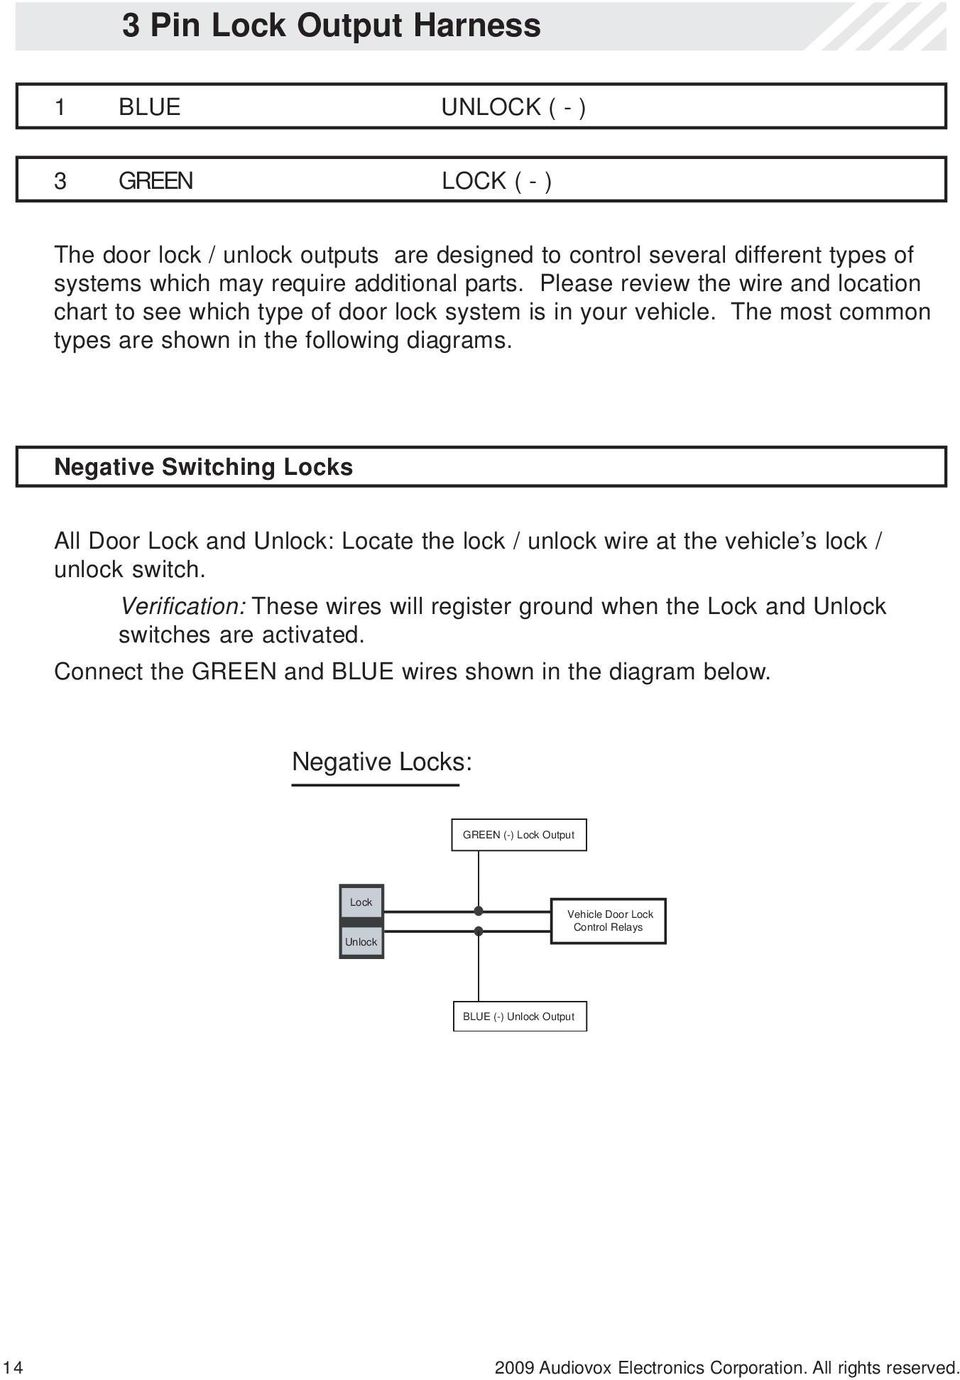 Security And Remote Start Installation Guide For Models Ca 6150 Pdf State Timer Wiring Diagram Besides Alarm Horn 12v Relay Negative Switching Locks All Door Lock Unlock Locate The Wire At